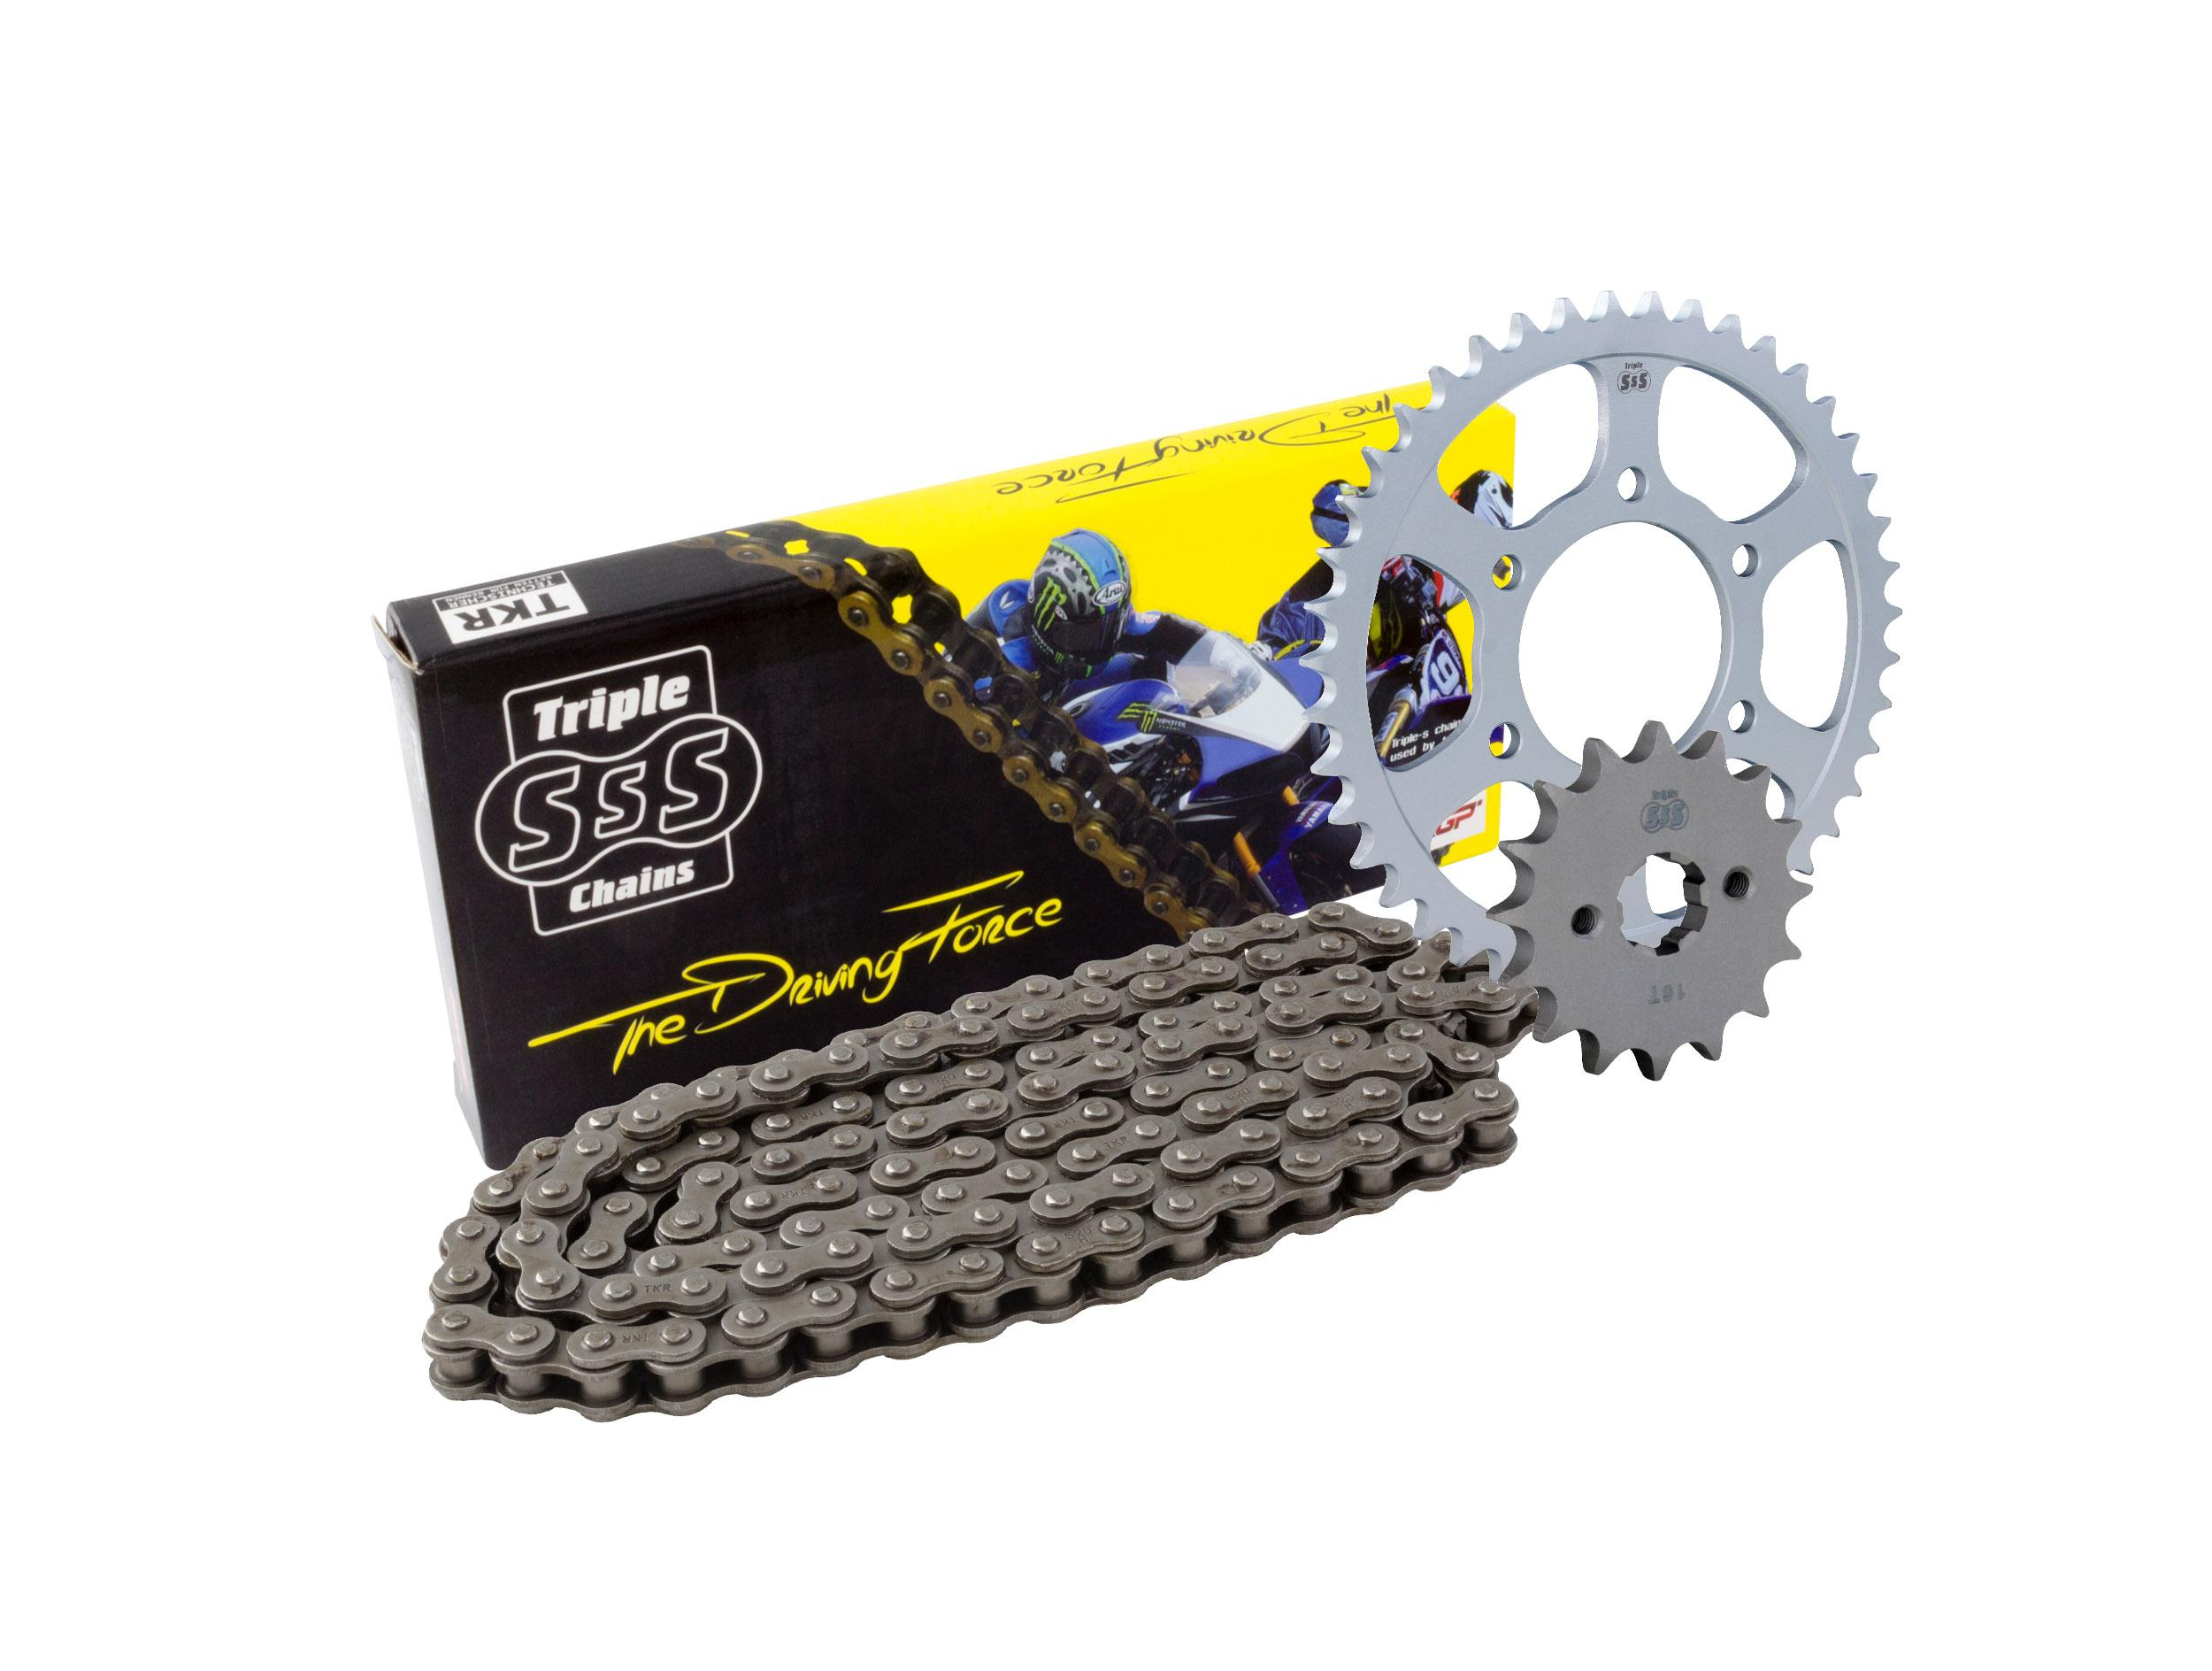 KTM 125 Duke 11-13 Chain & Sprocket Kit: 14T Front, 45T Rear, HD Chain 525H 112 Link